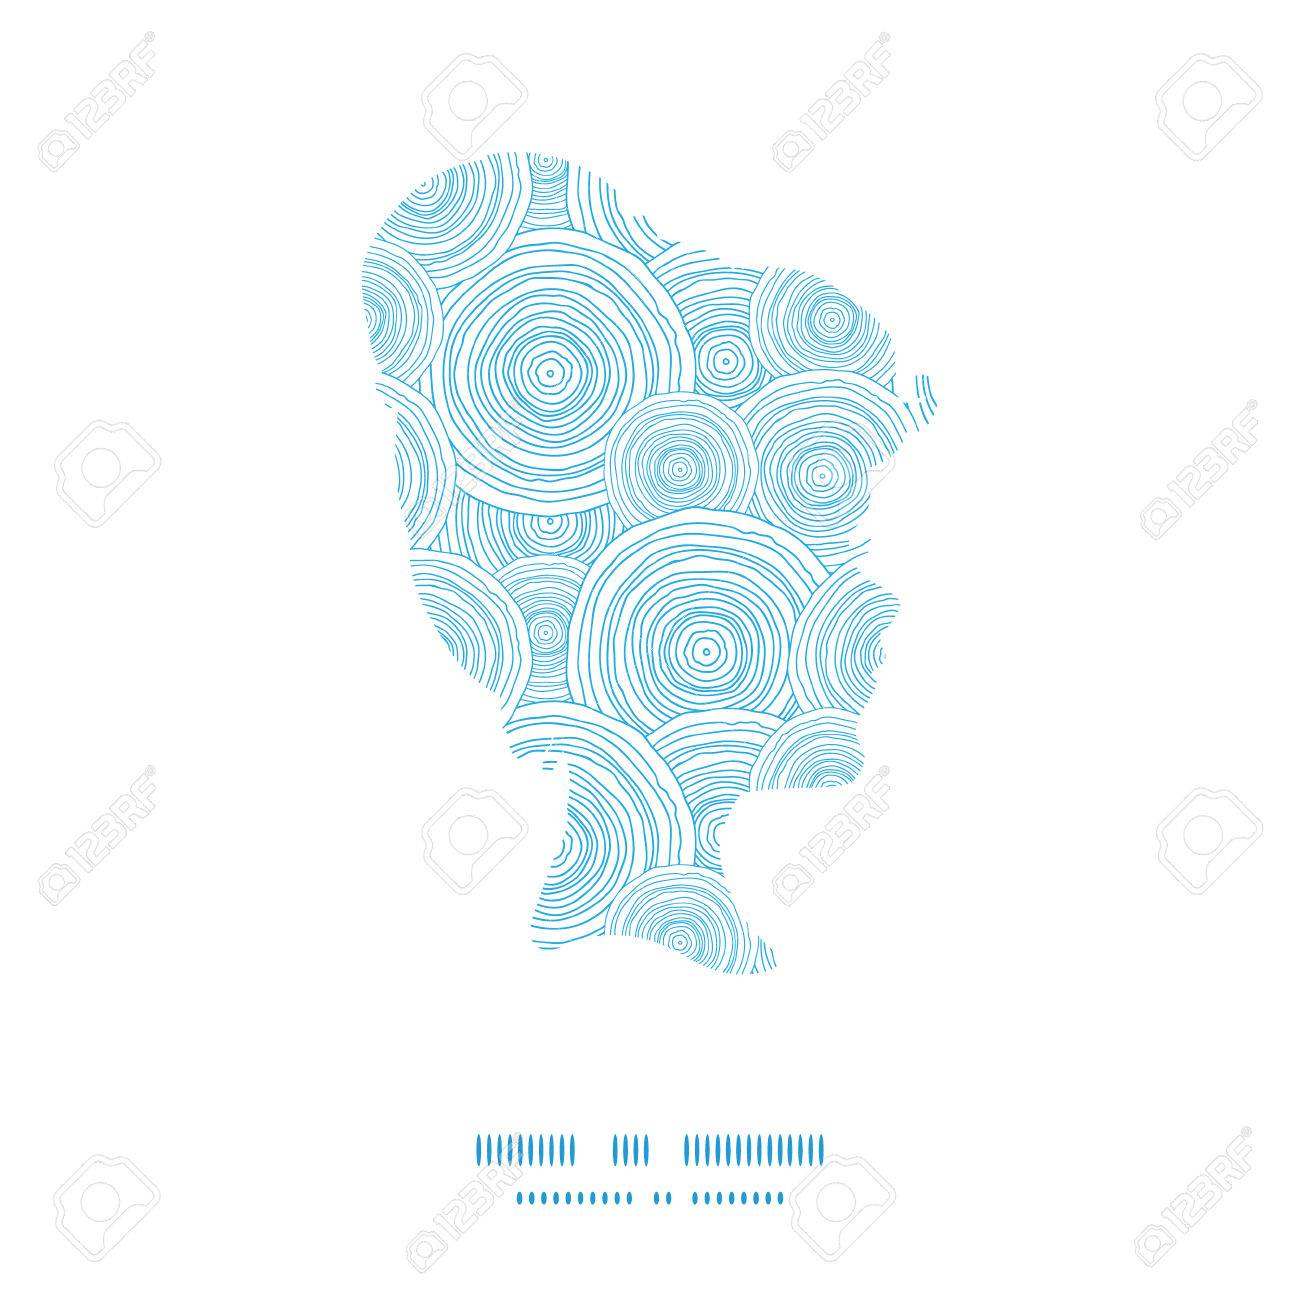 vector doodle circle water texture girl portrait silhouette pattern..  royalty free cliparts, vectors, and stock illustration. image 34901877.  123rf